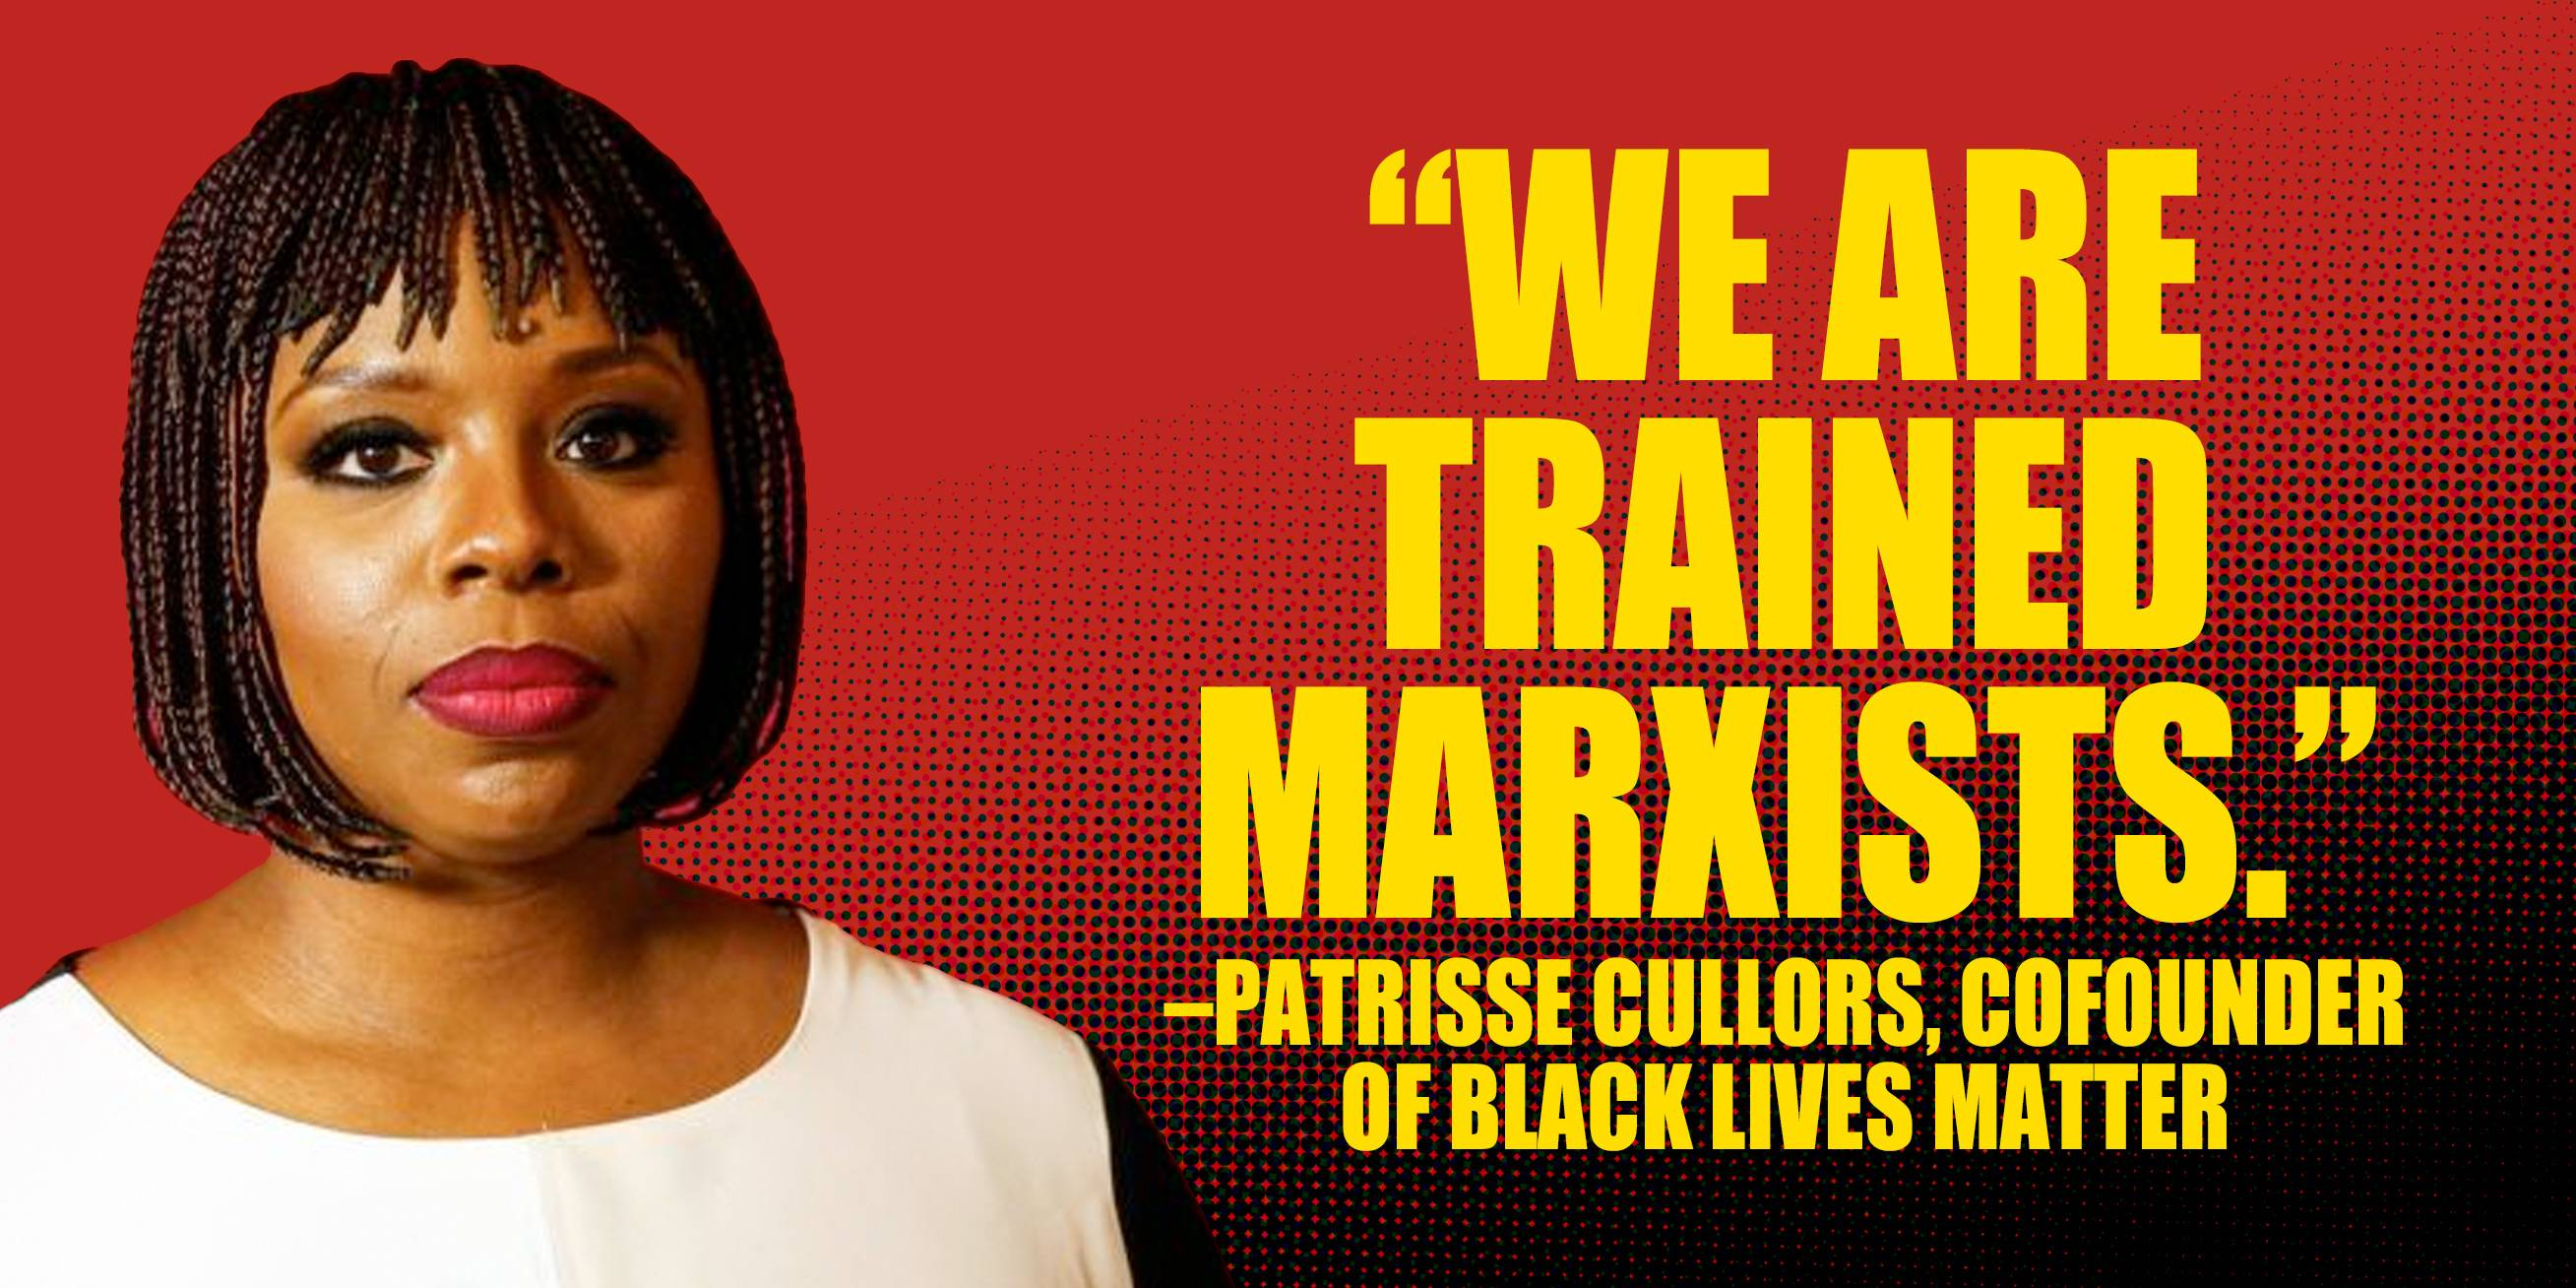 BLM is a funded Marxist group. Would you like to know more? : walkaway